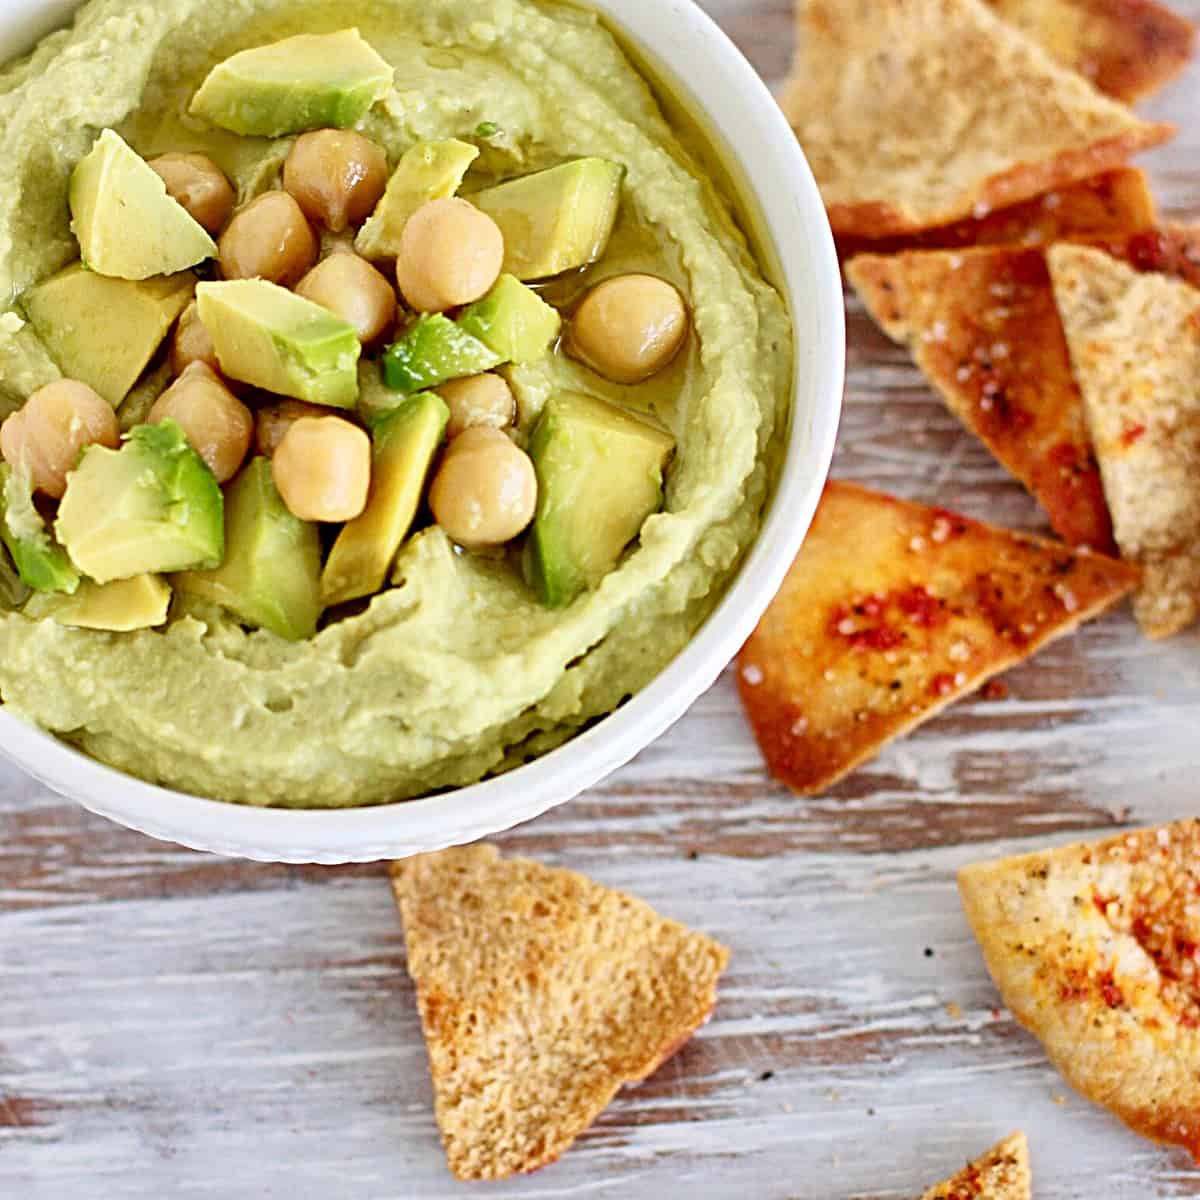 White bowl with green dip, chickpeas and pita chips; on white wooden table